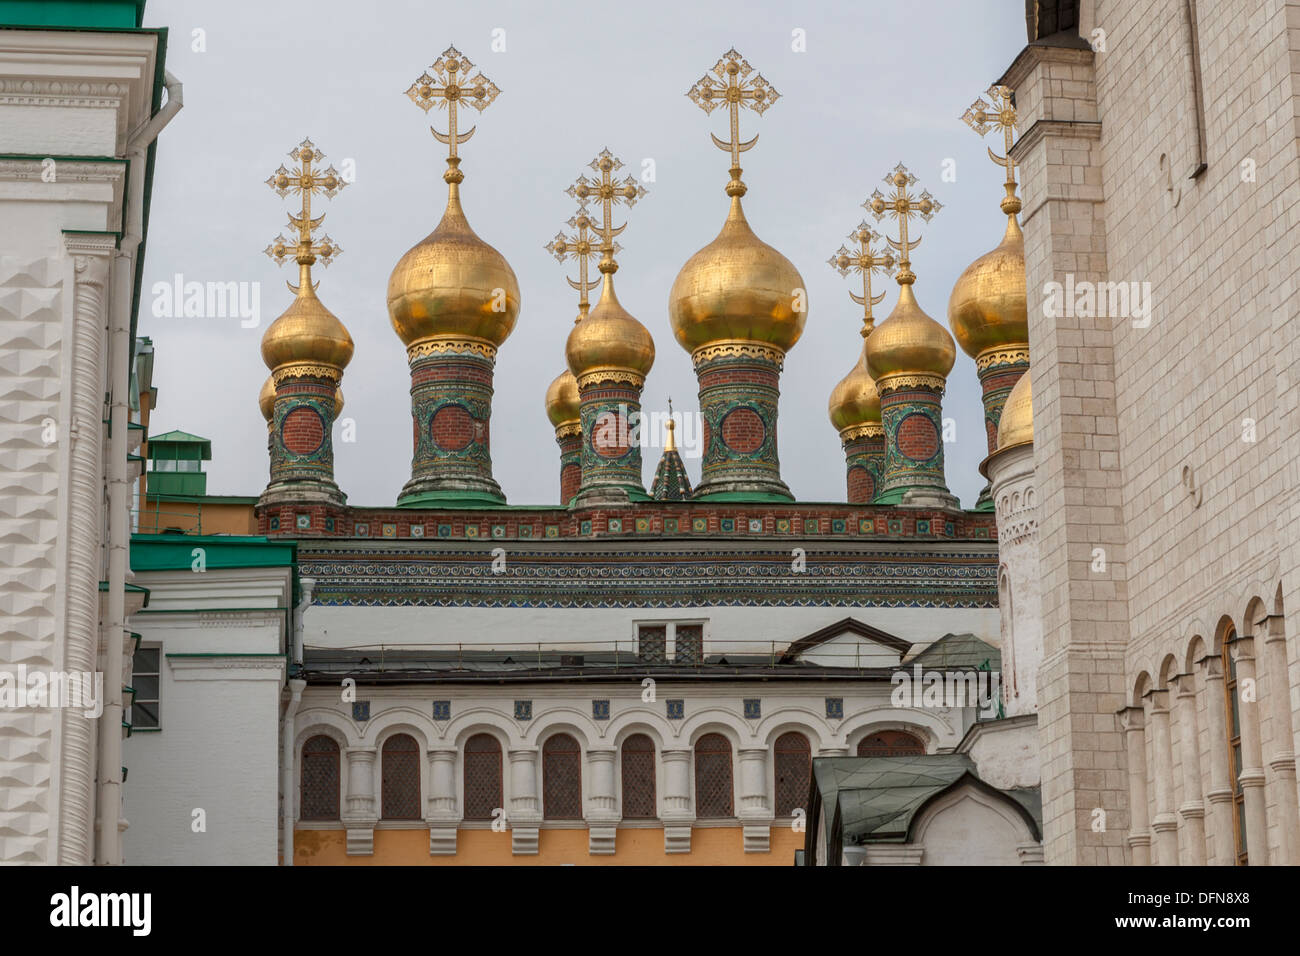 The Church of Laying Our Lady's Robe Kremlin Moscow - Stock Image